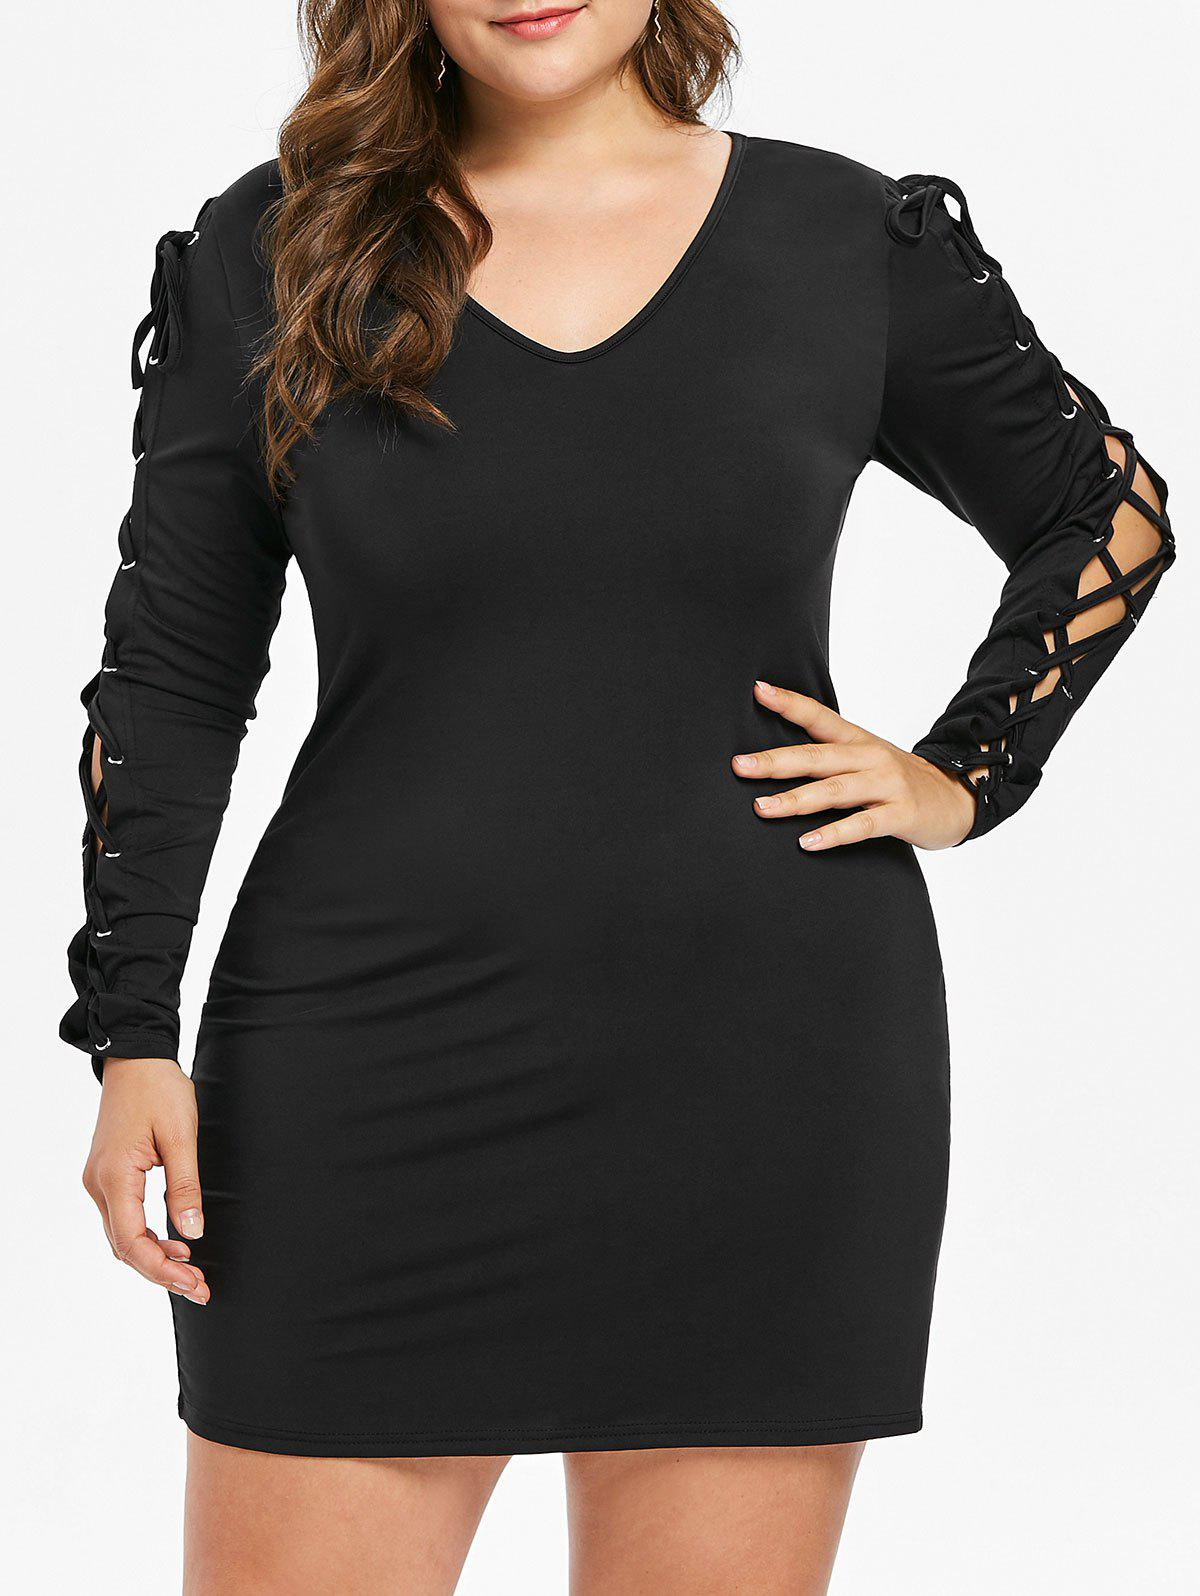 Buy Lace Up Sleeve Plus Size Bodycon Dress